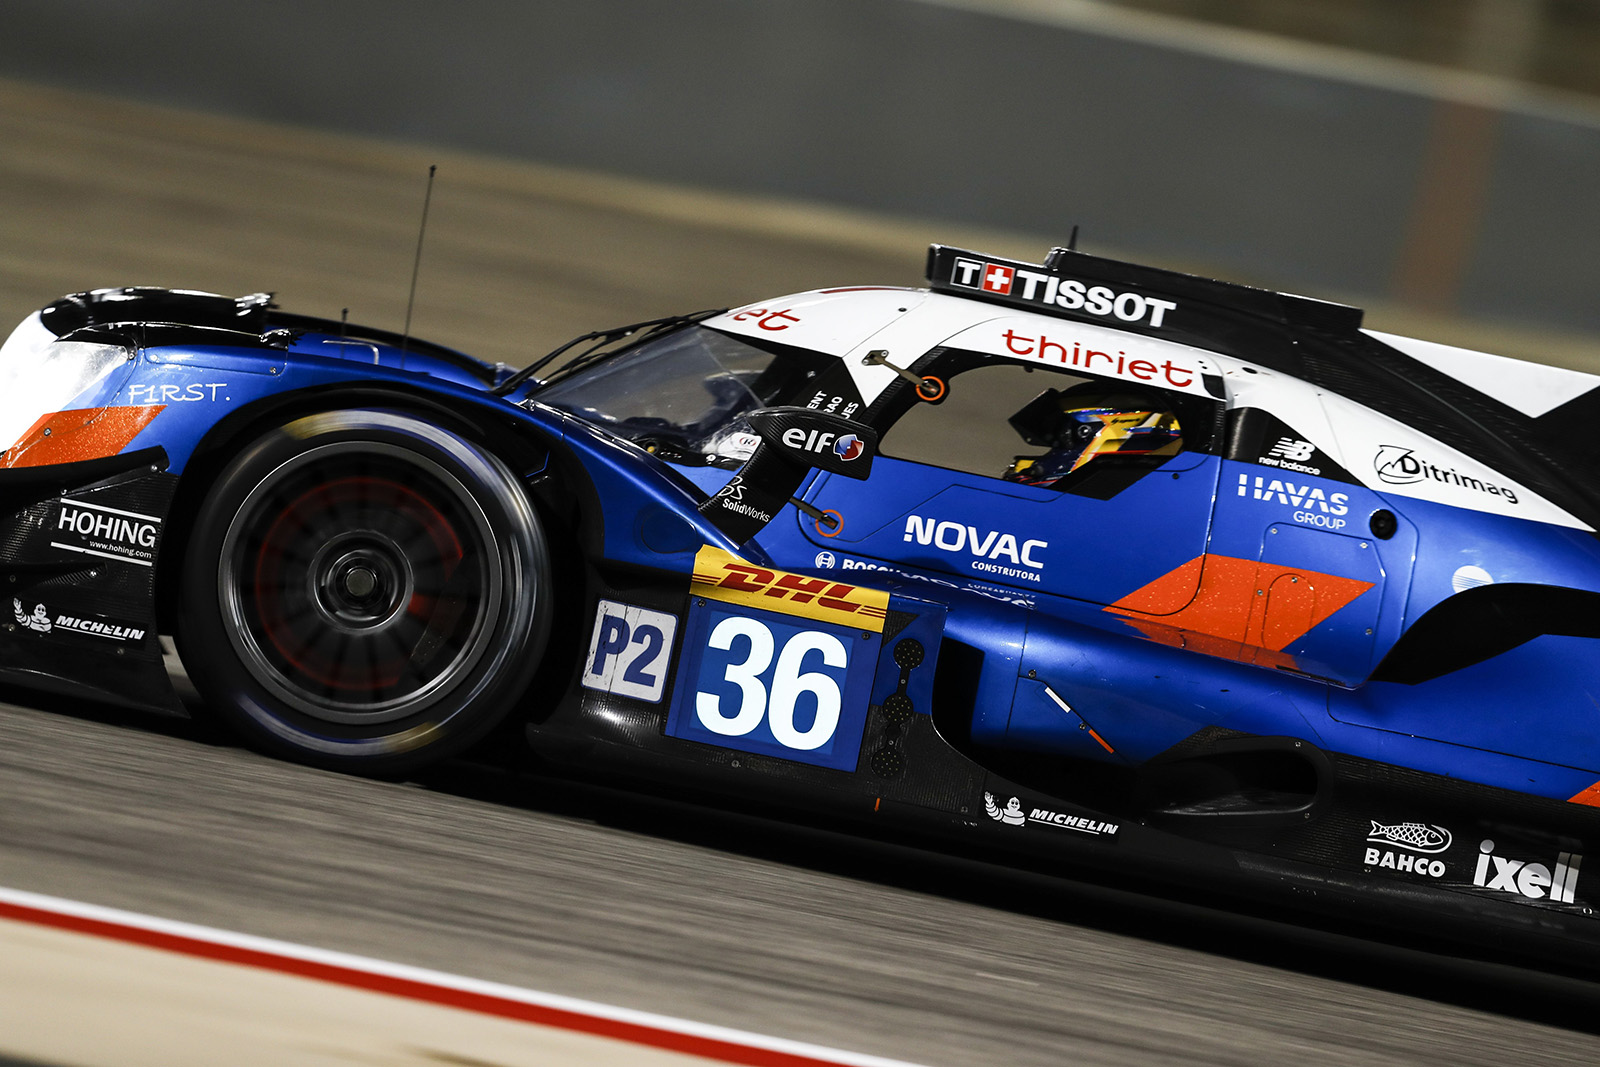 36 LAURENT Thomas (fra), NEGRAO André (bra), RAGUES Pierre (fra), Alpine A470 Gibson team Signatech Alpine Elf, action during the 2019 FIA WEC World Endurance Championship, 8 Hours of Bahrain from december 12 to 14 at International Circuit of Sakhir